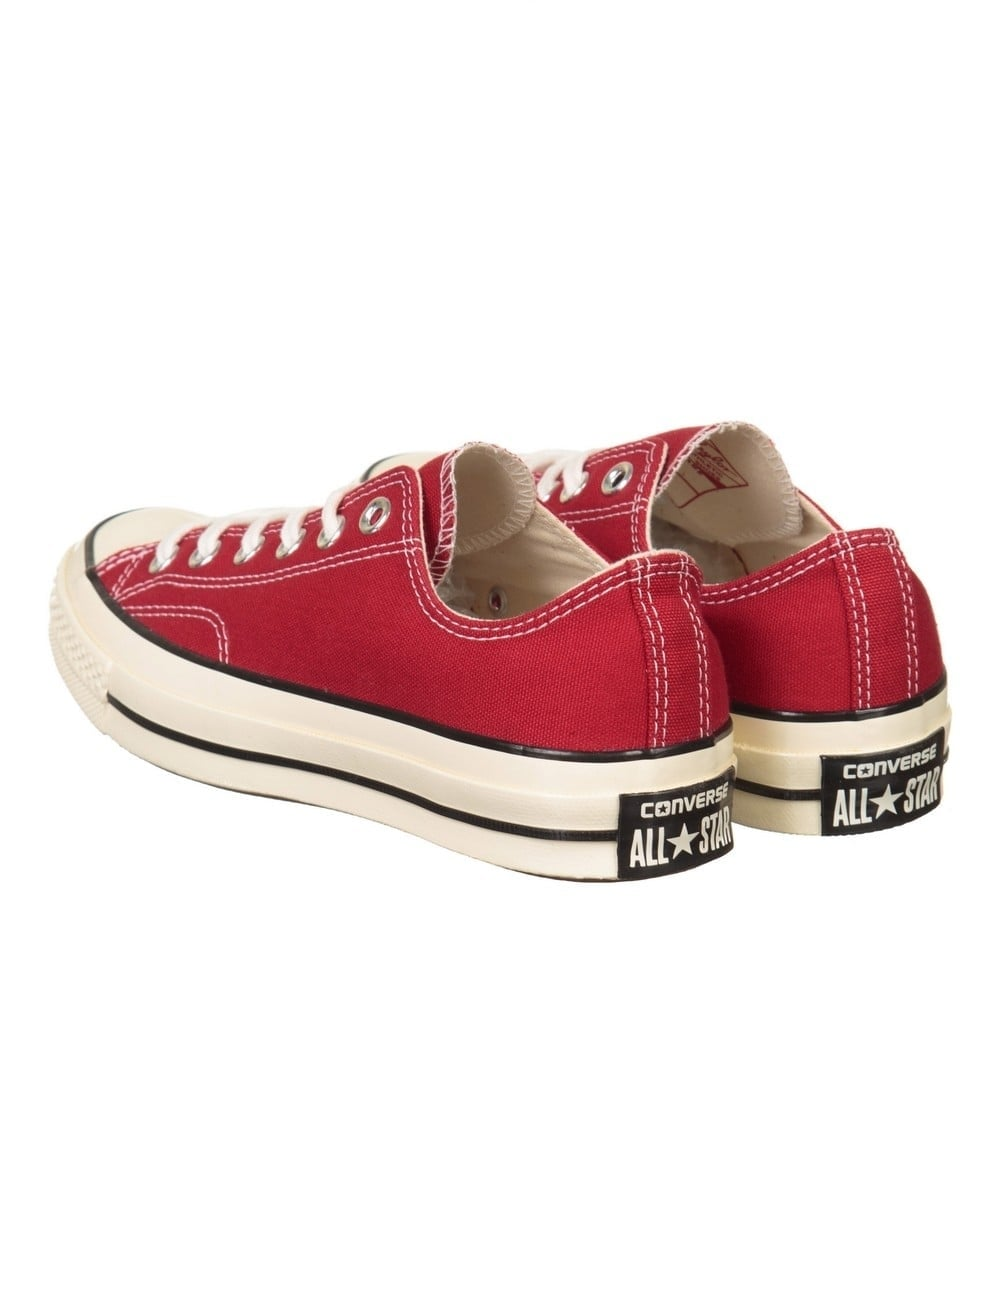 Converse Chuck Taylor 70s Ox Shoes